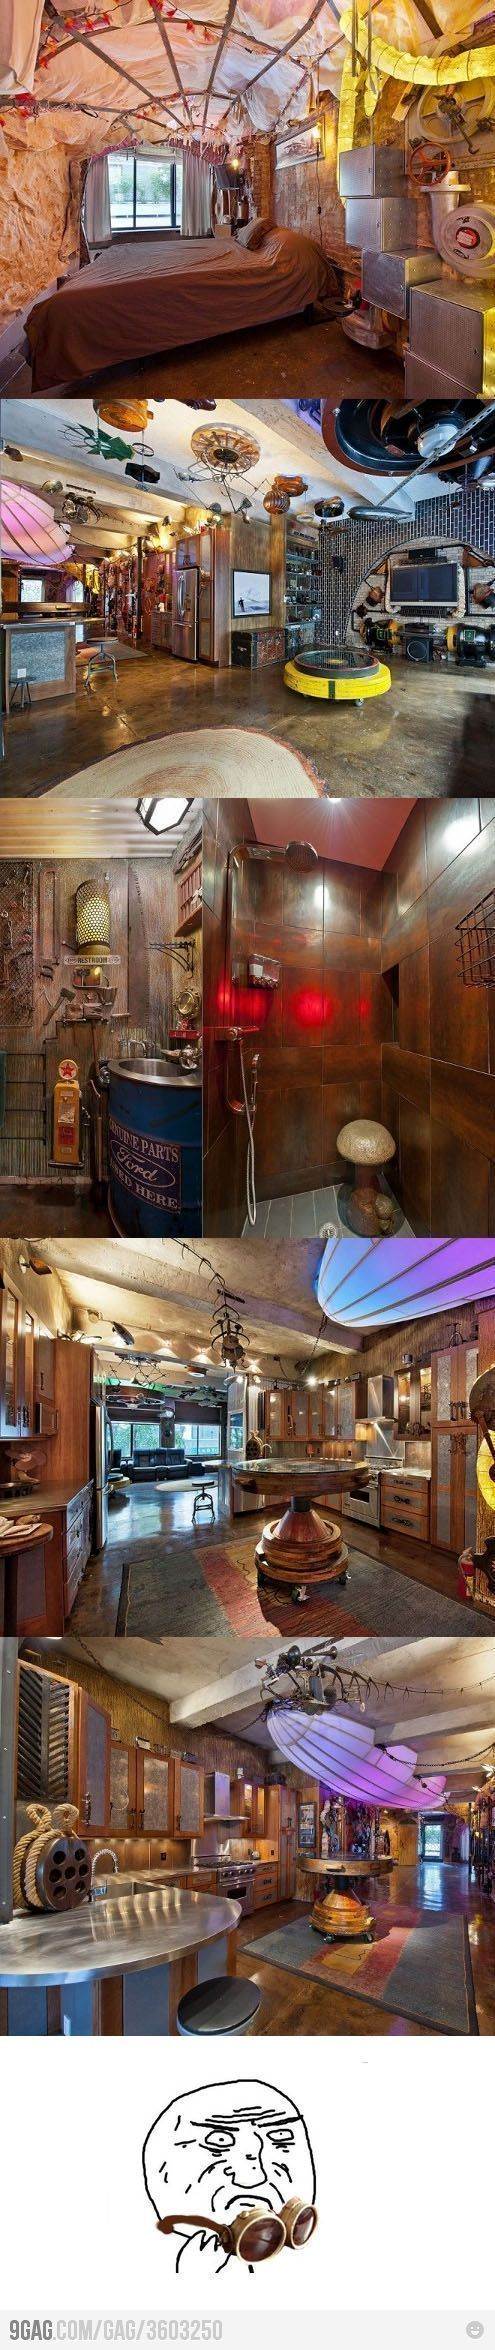 Best 25 picture wall staircase ideas on pinterest stairway gallery staircase pictures and - Steampunk bedroom ideas ...